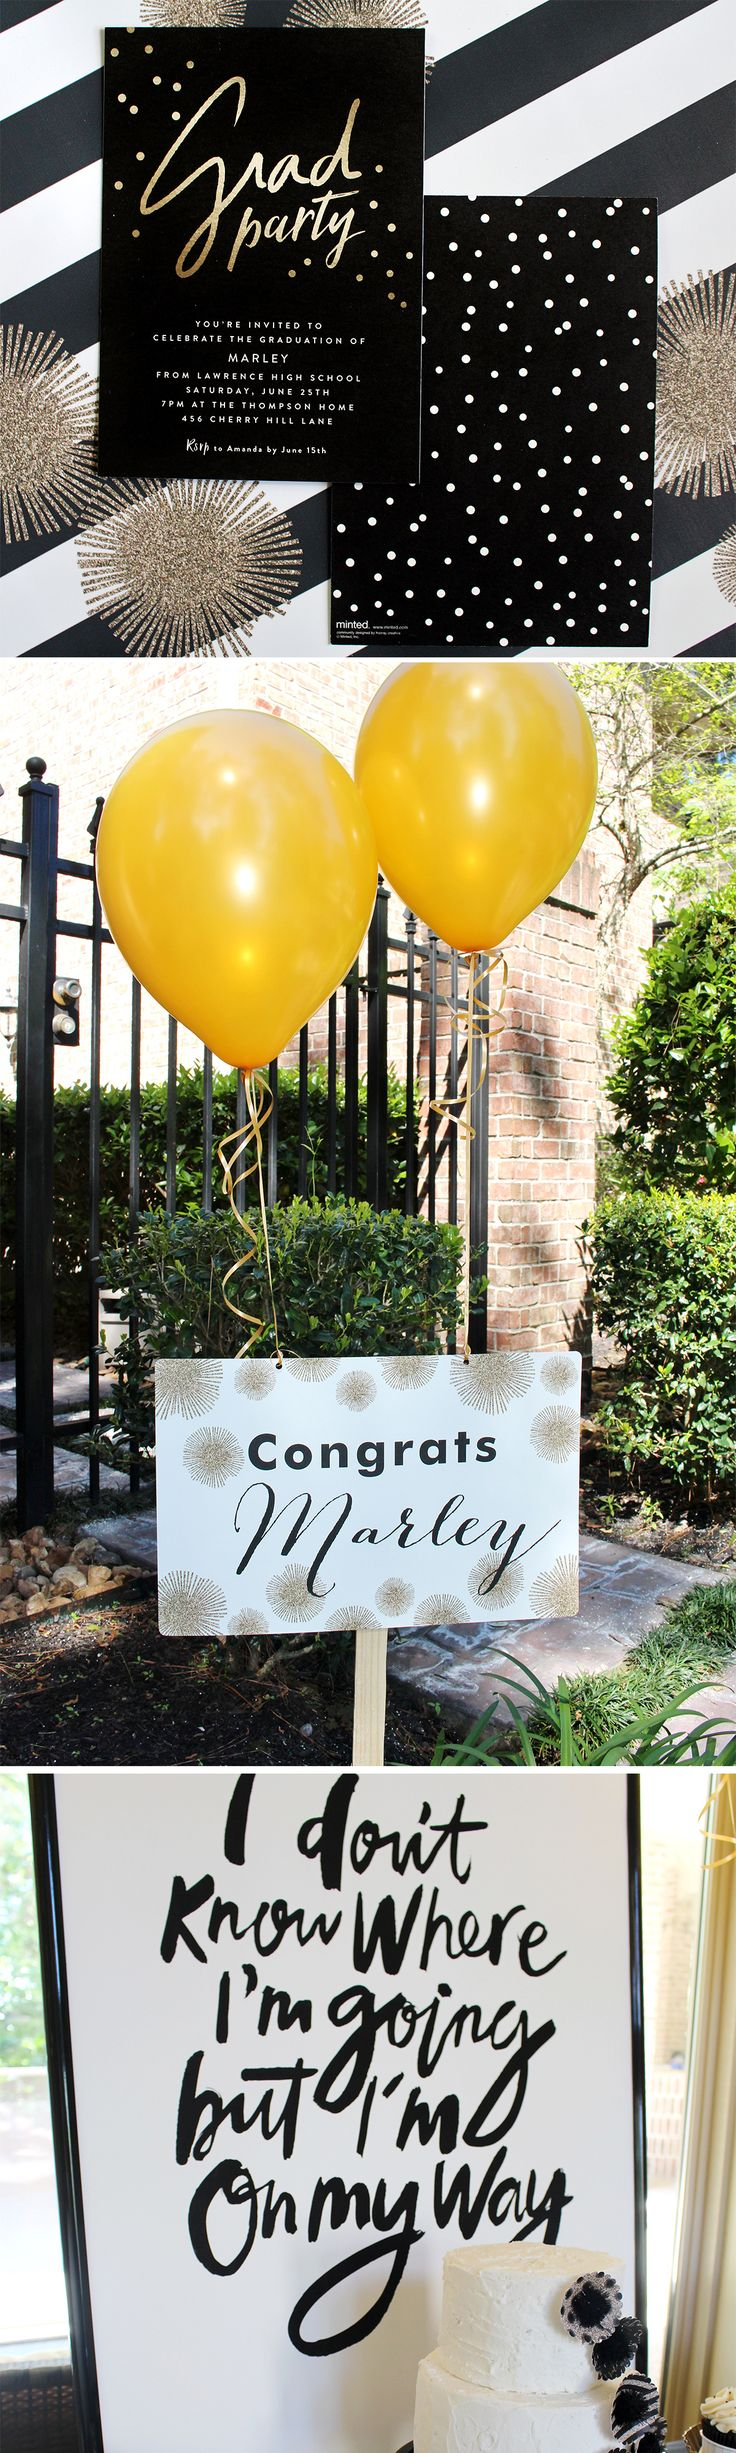 Stylish Graduation Party ideas! Love this for High School or College Graduation Parties! | Ideas elegantes para fiestas de graduación.